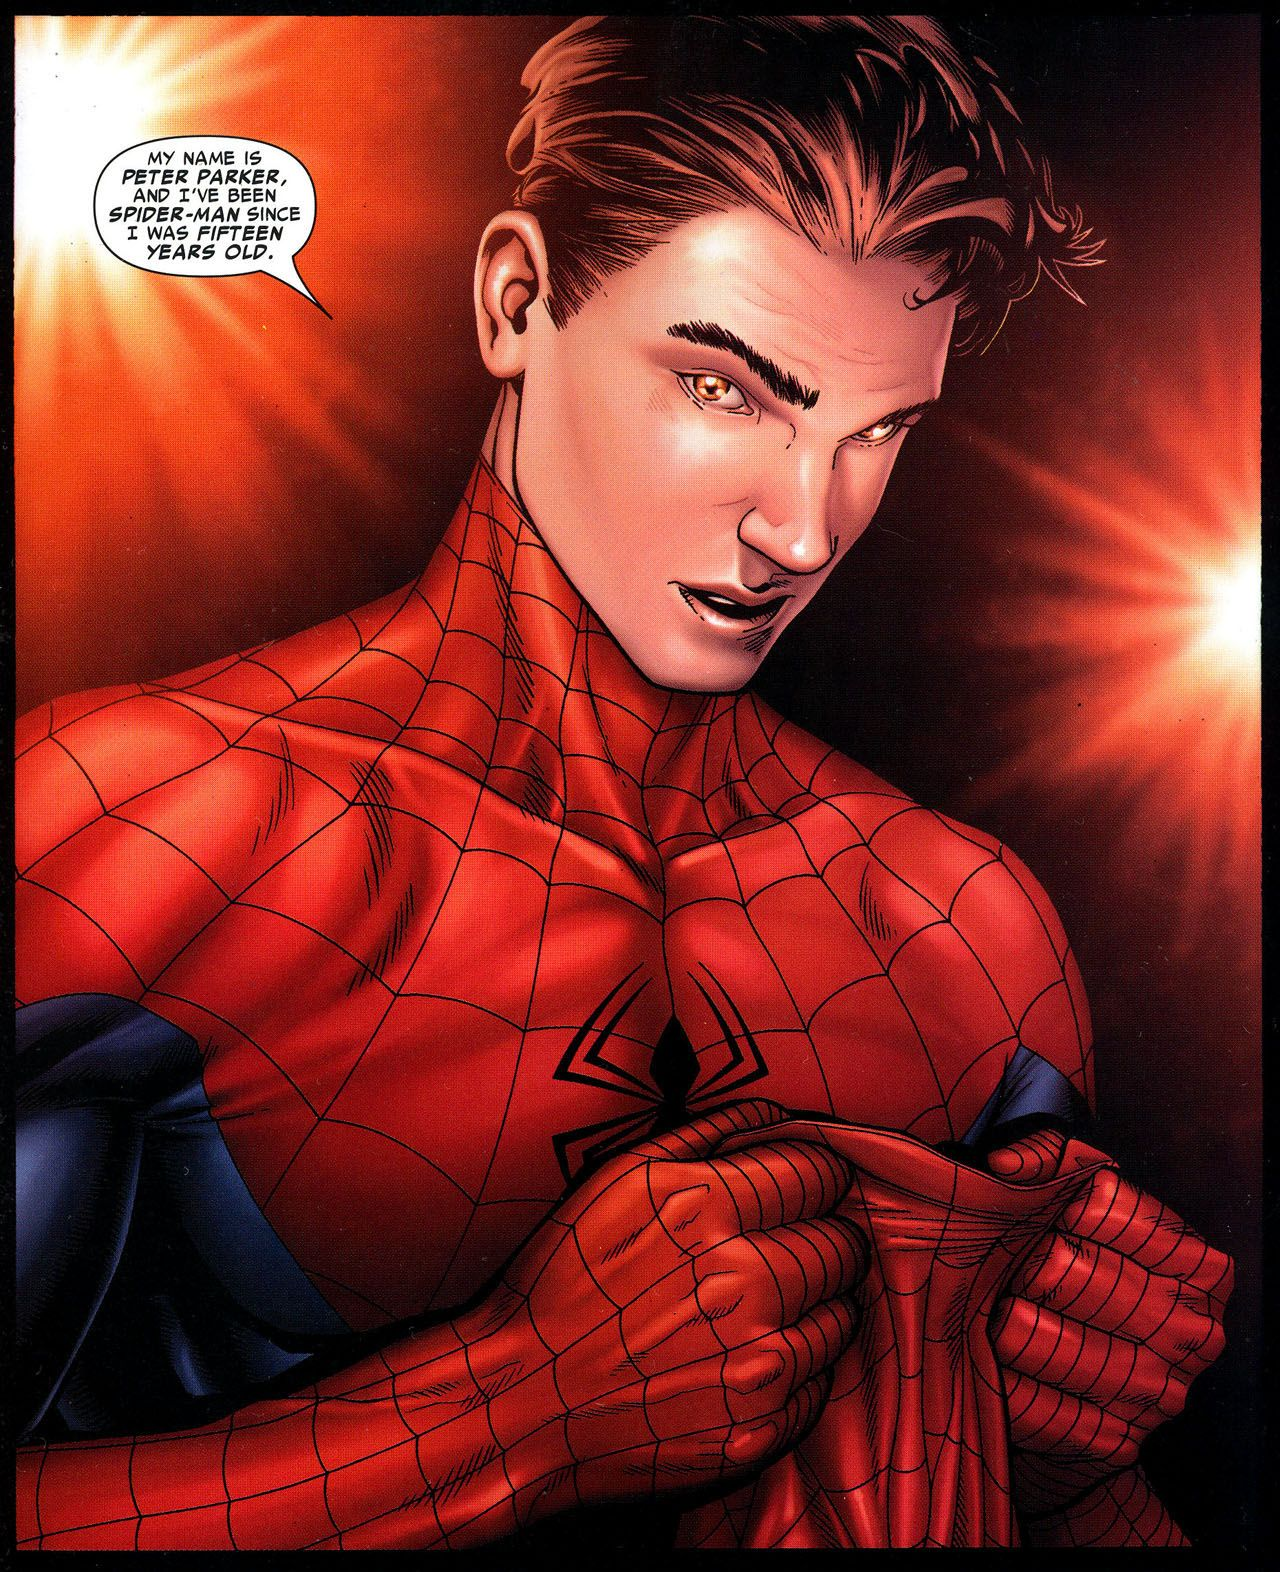 Spider-man Unmasked! By far this is the greatest moment from